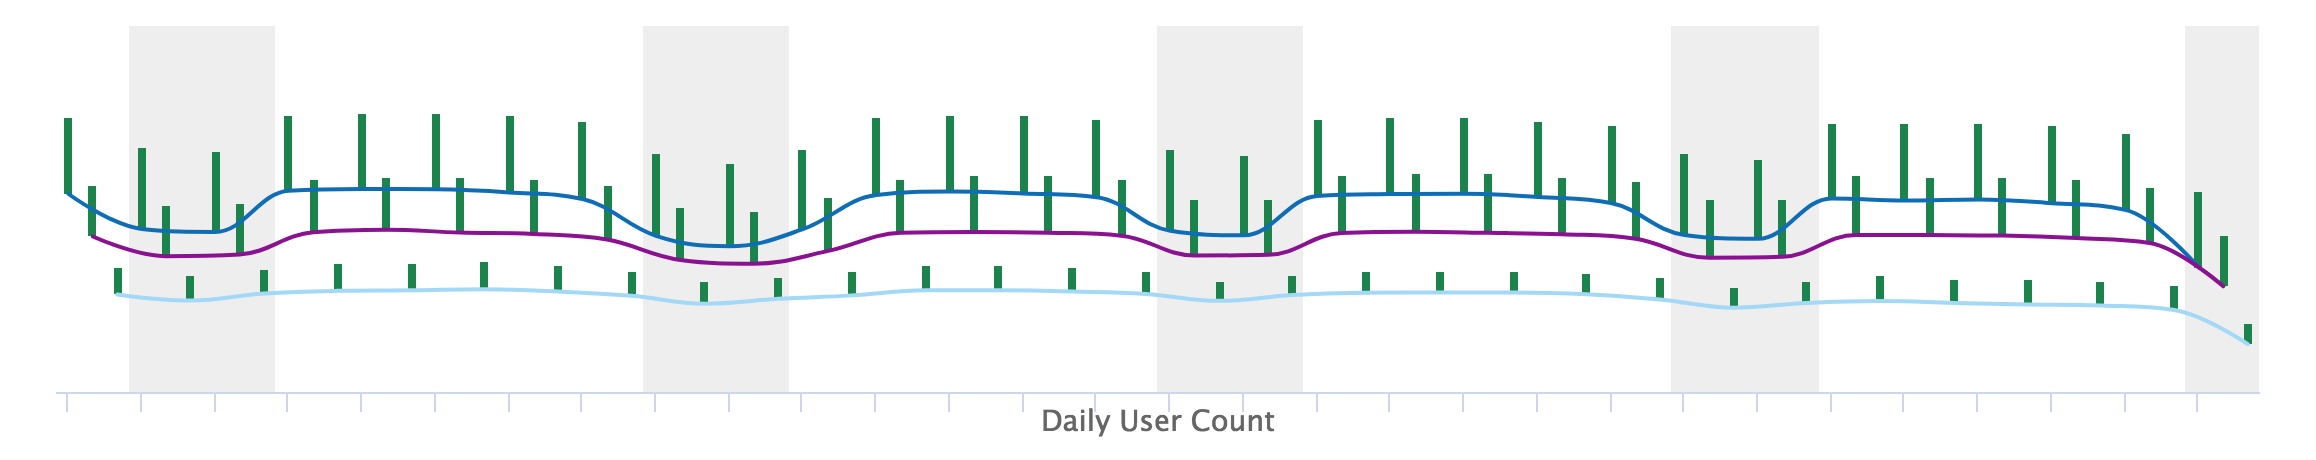 App Activity Daily Trend Report: Daily User Count Chart